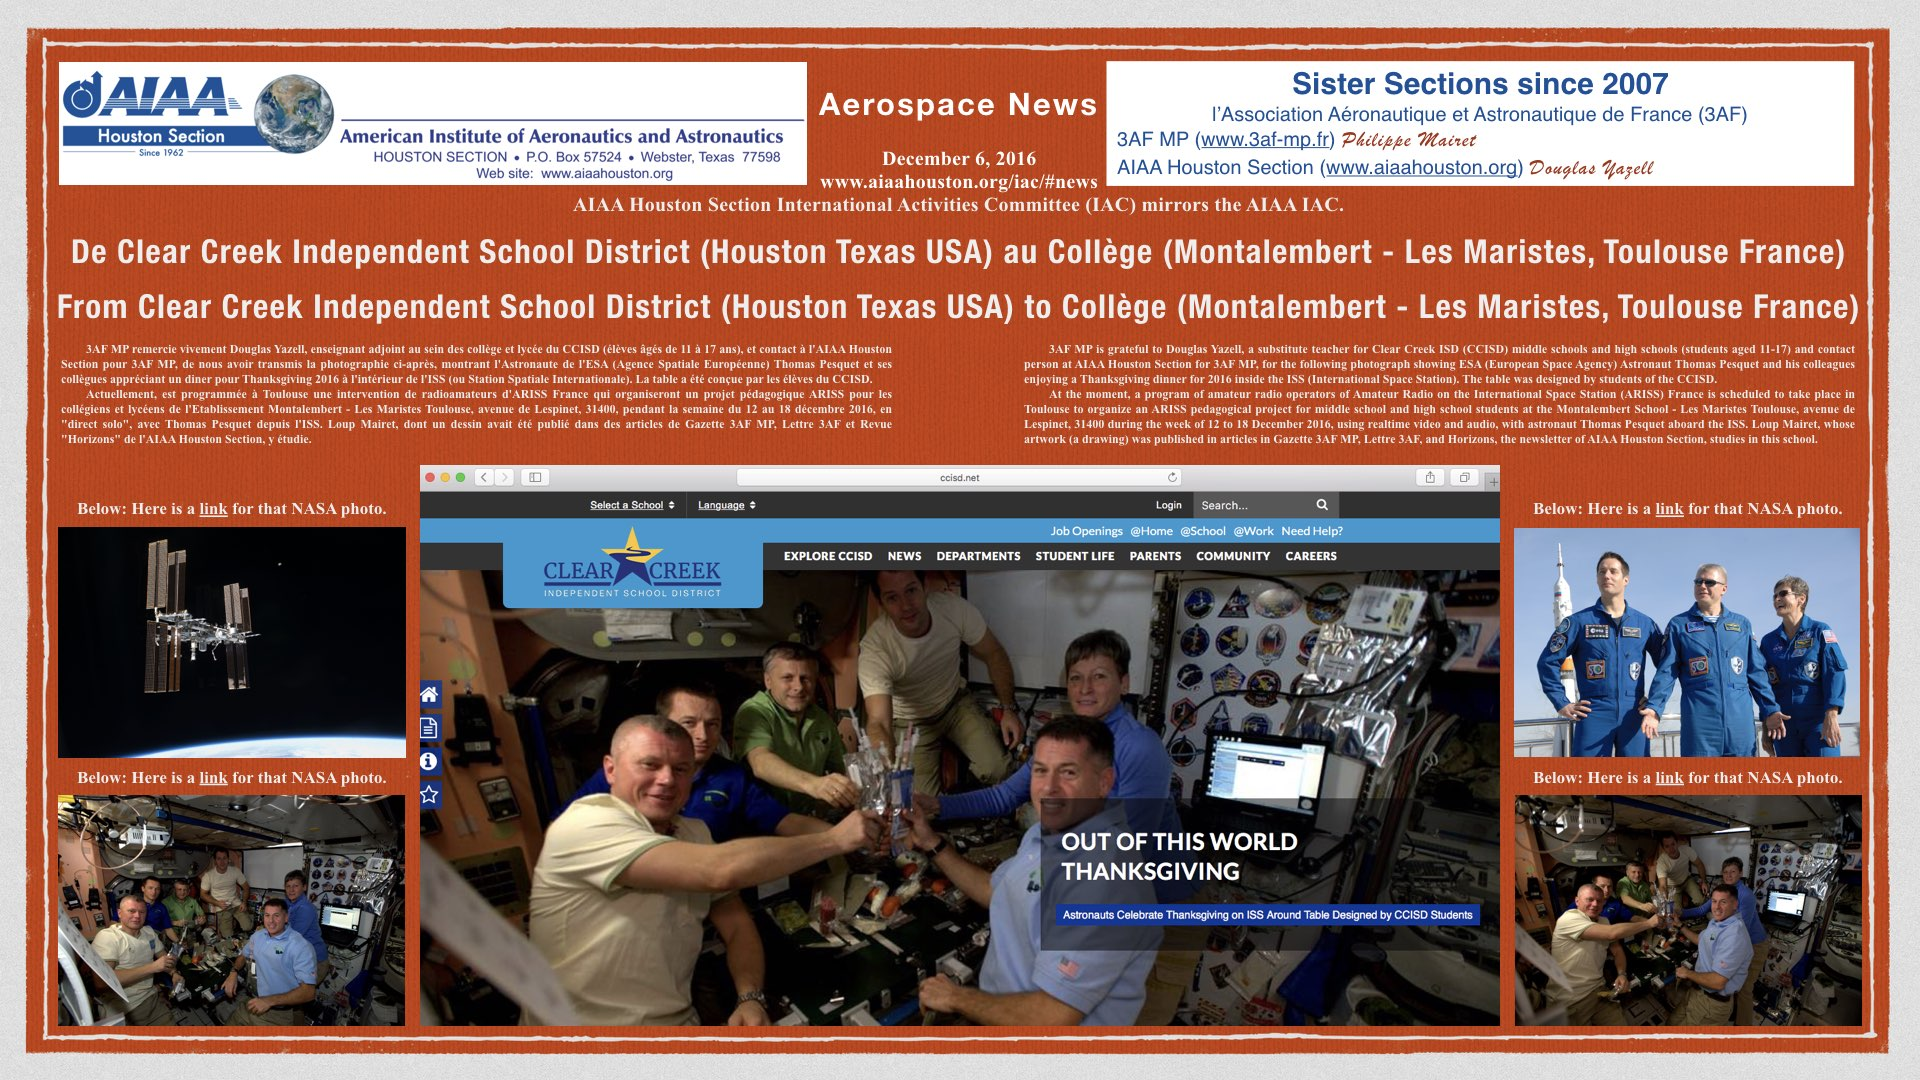 Above: From Clear Creek Independent School District (Houston Texas USA) to Collège (Montalembert - Les Maristes, Toulouse France). (Click to zoom.)